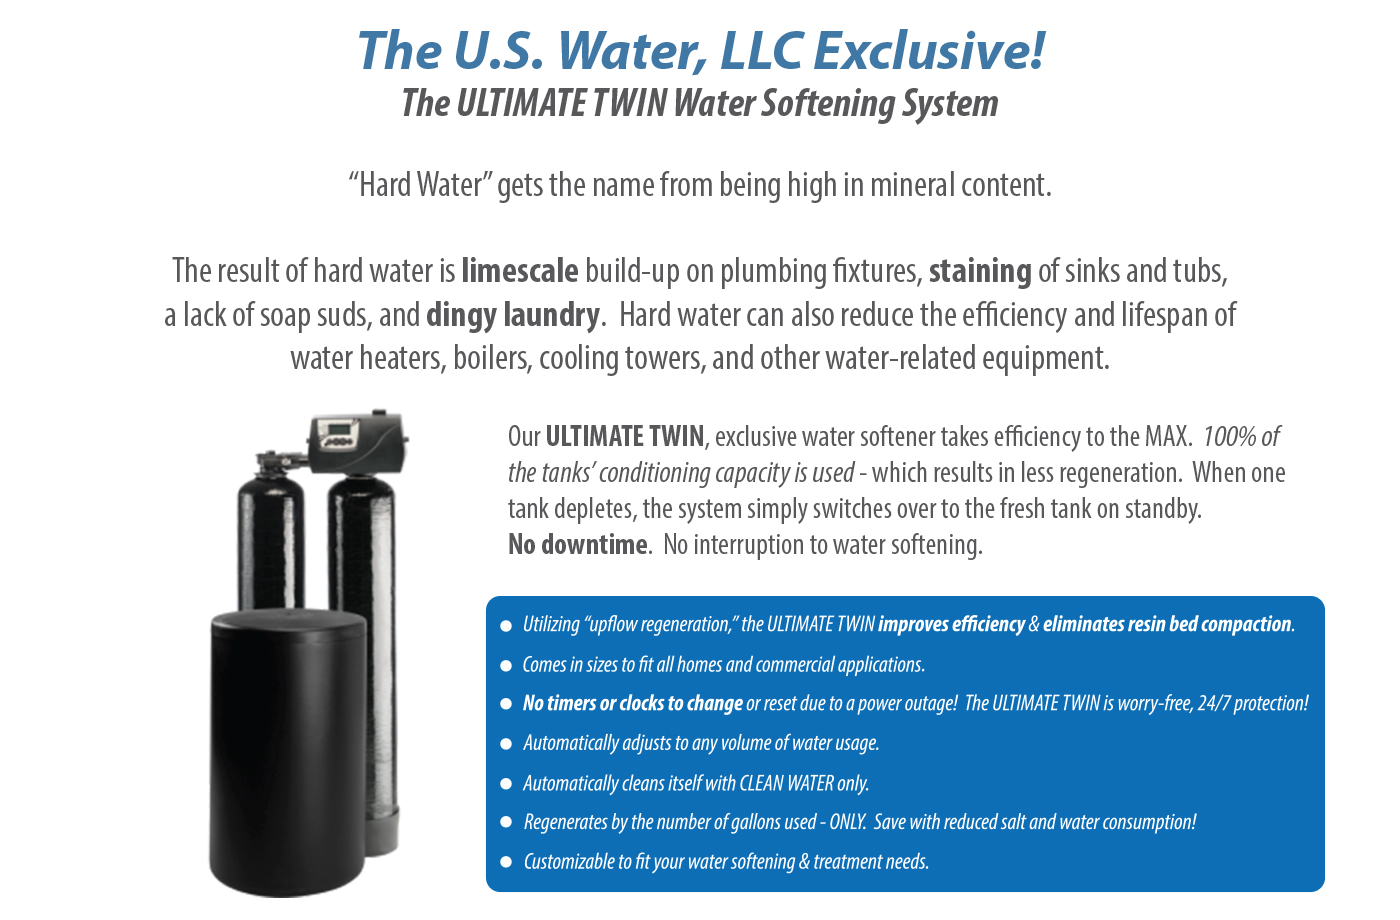 U.S. Water, LLC Ultimate Twin Water Softener